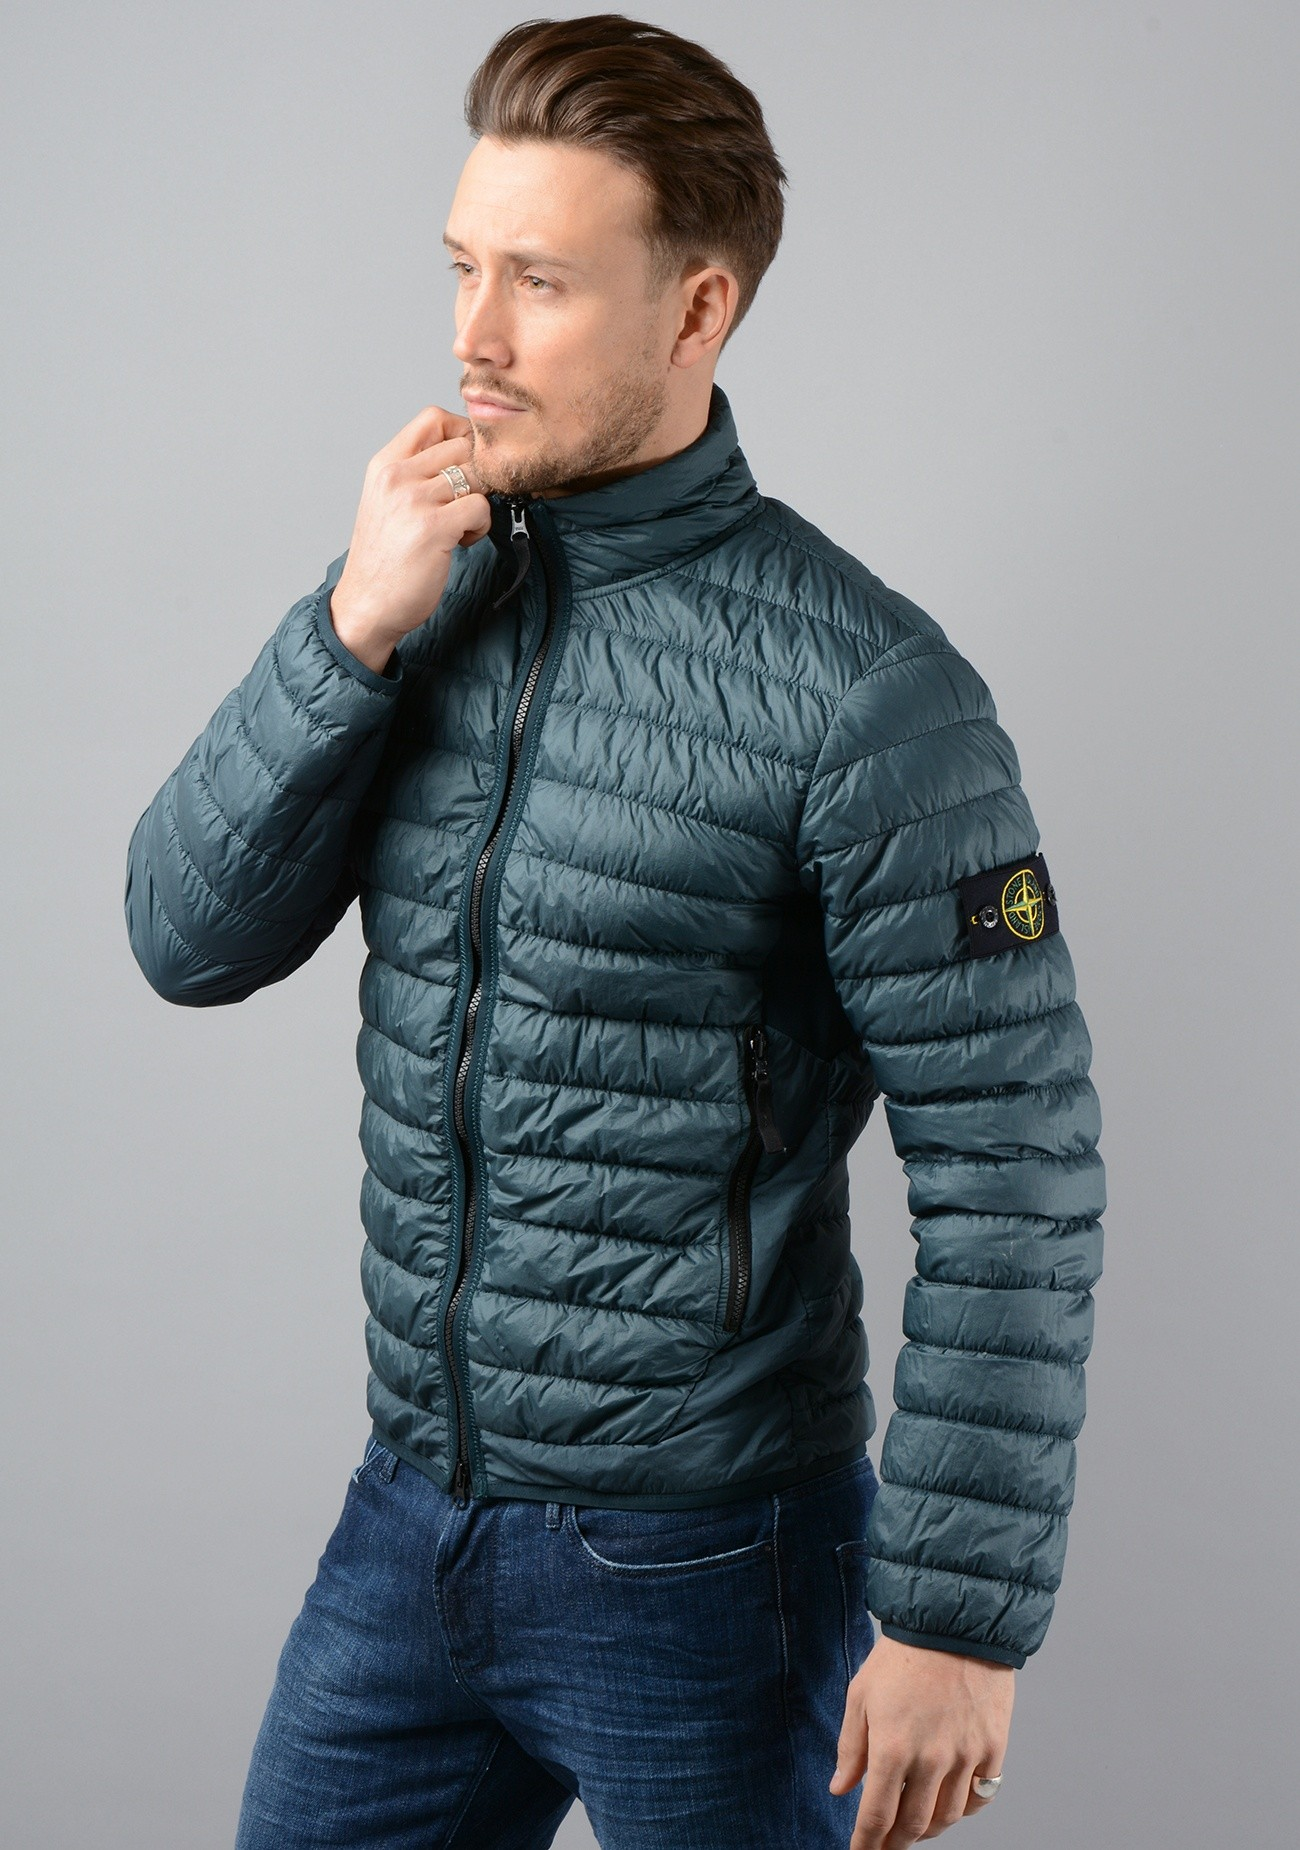 40324 Garment Dyed Micro Yarn Down Packable Jacket in Green